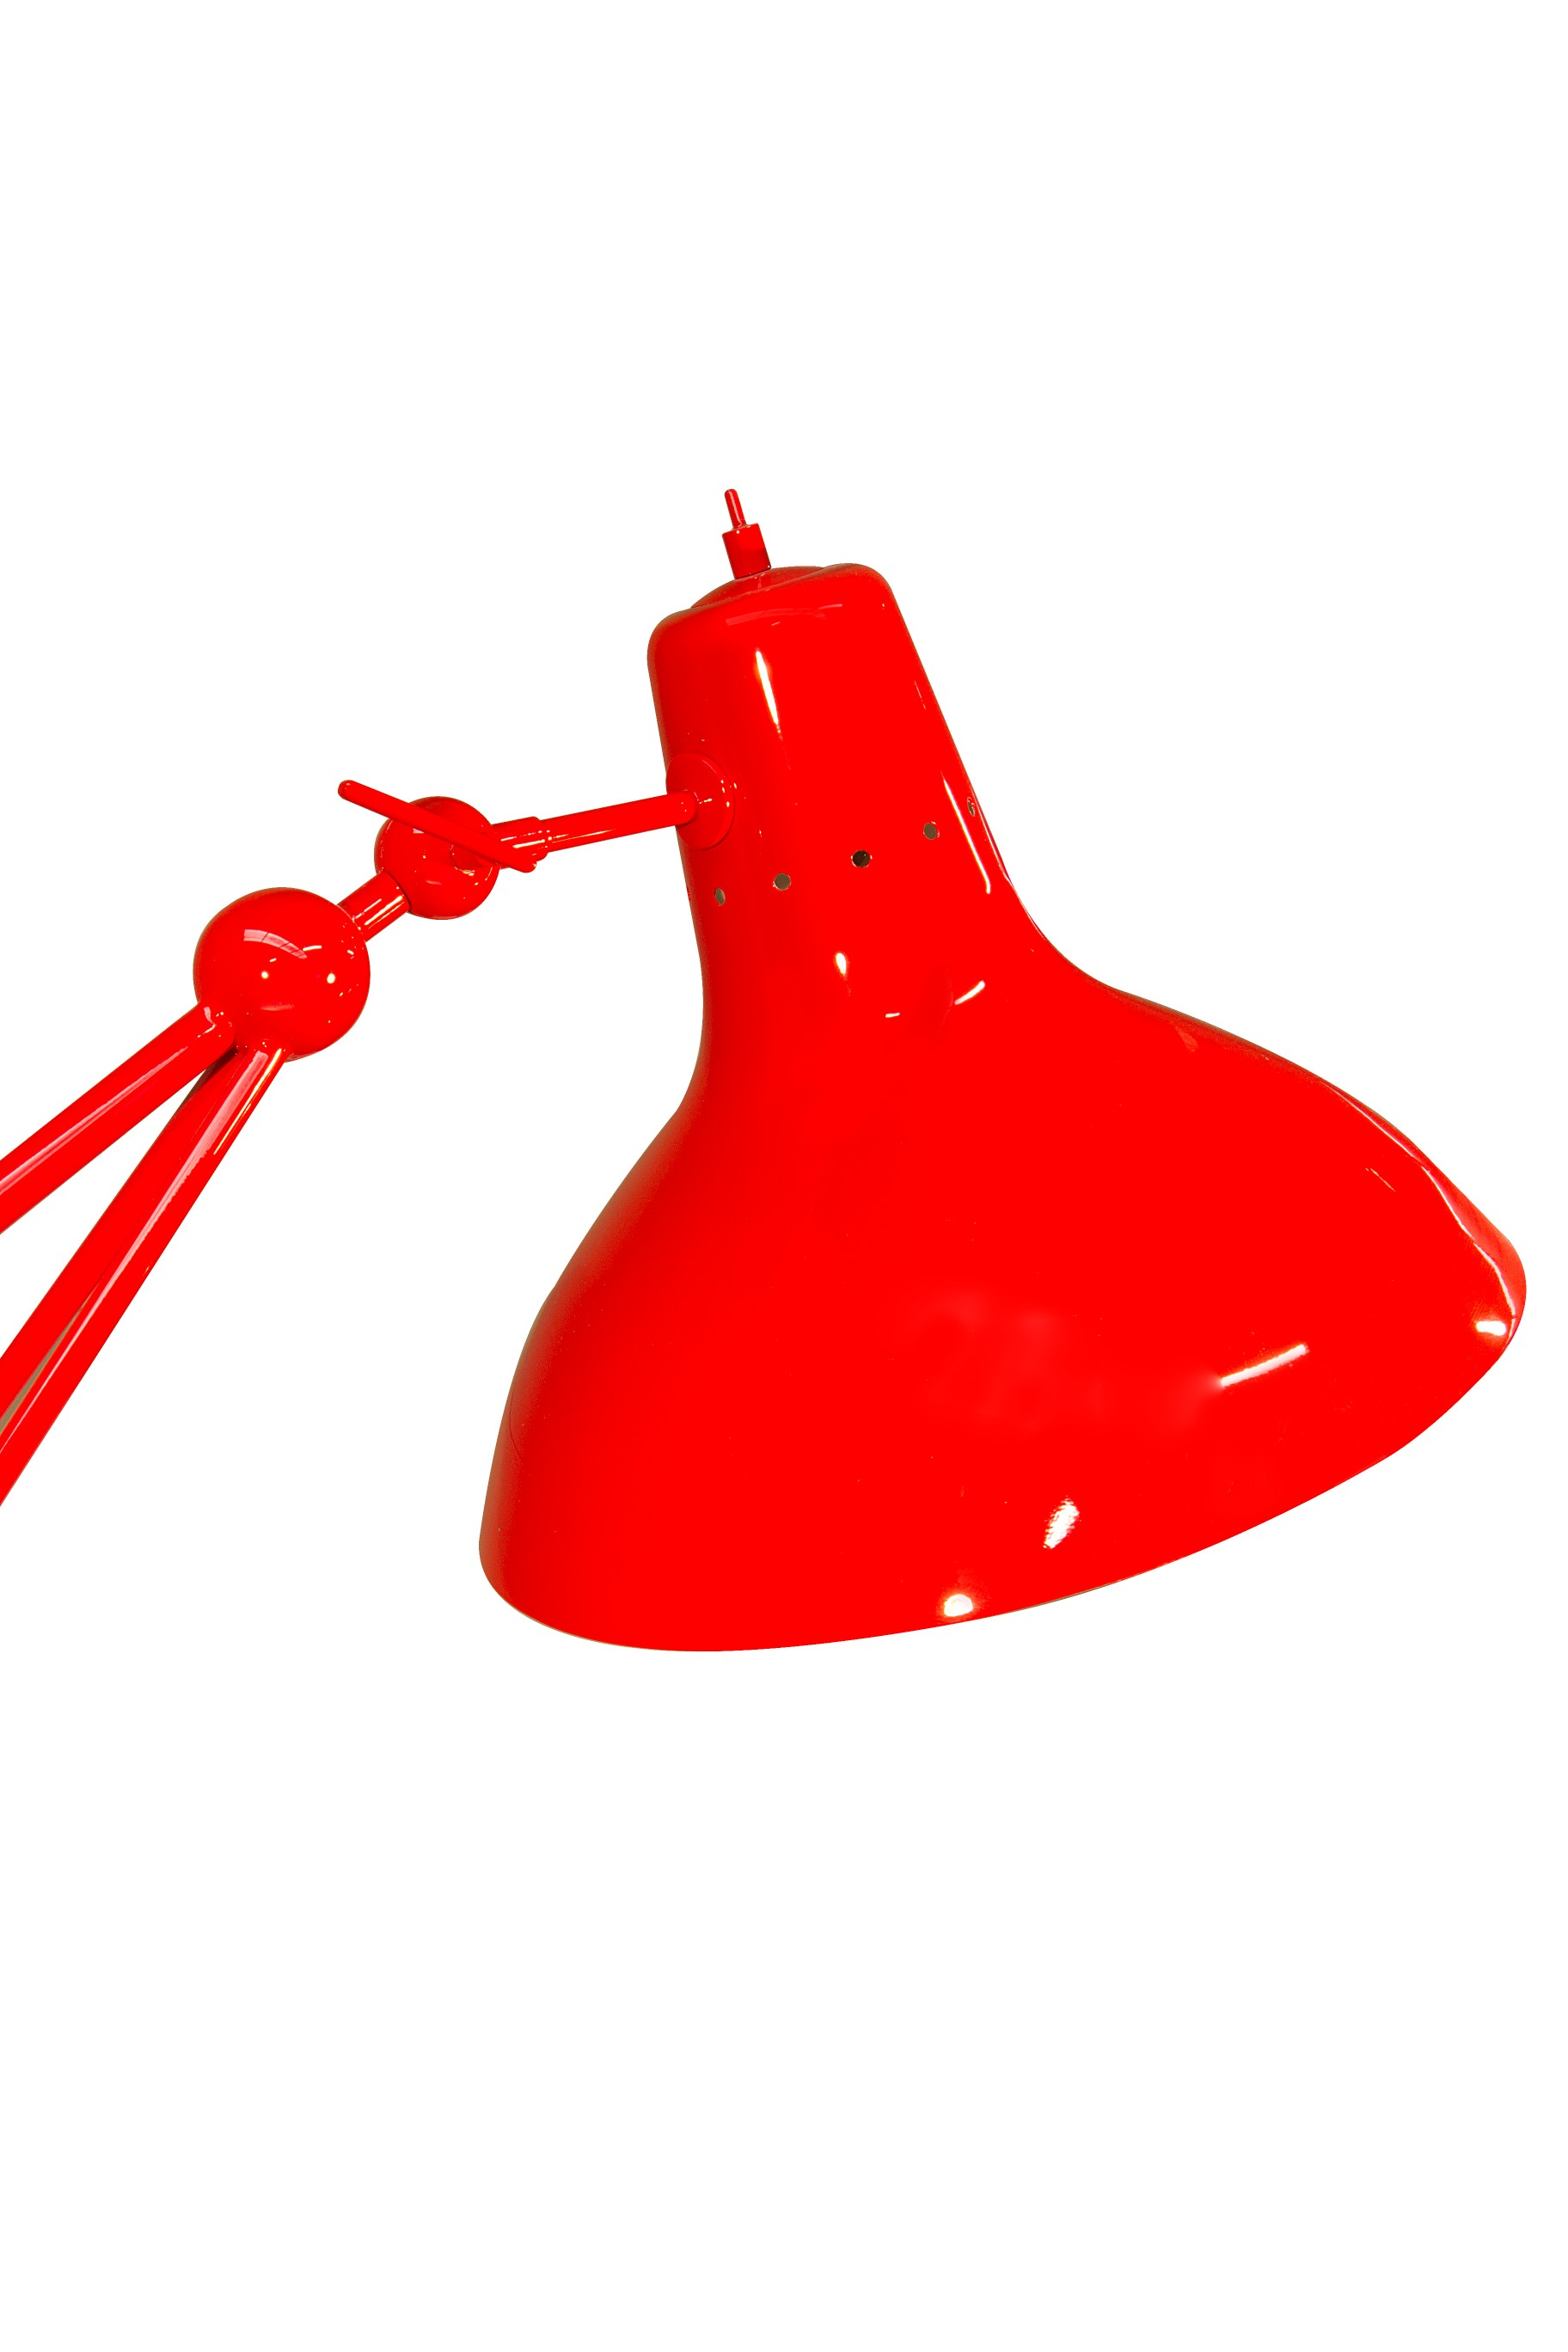 GLOSSY RED FINISH glossy red finish Floor Samples Gives You Lamps With Glossy Red Finish! Floor Samples Gives You Lamps With Glossy Red Finish3